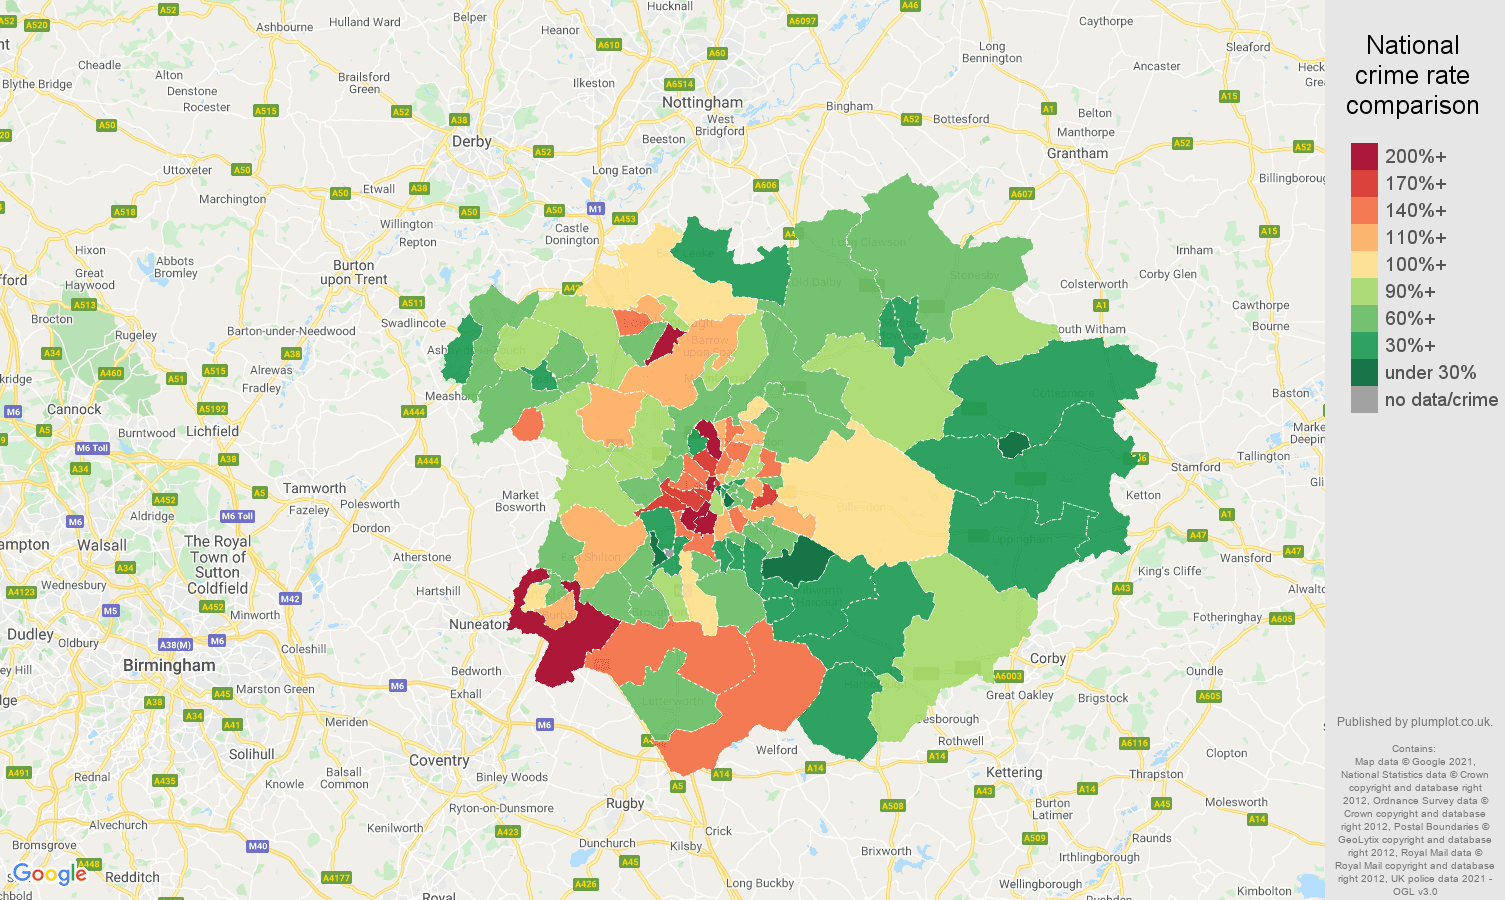 Leicester vehicle crime rate comparison map